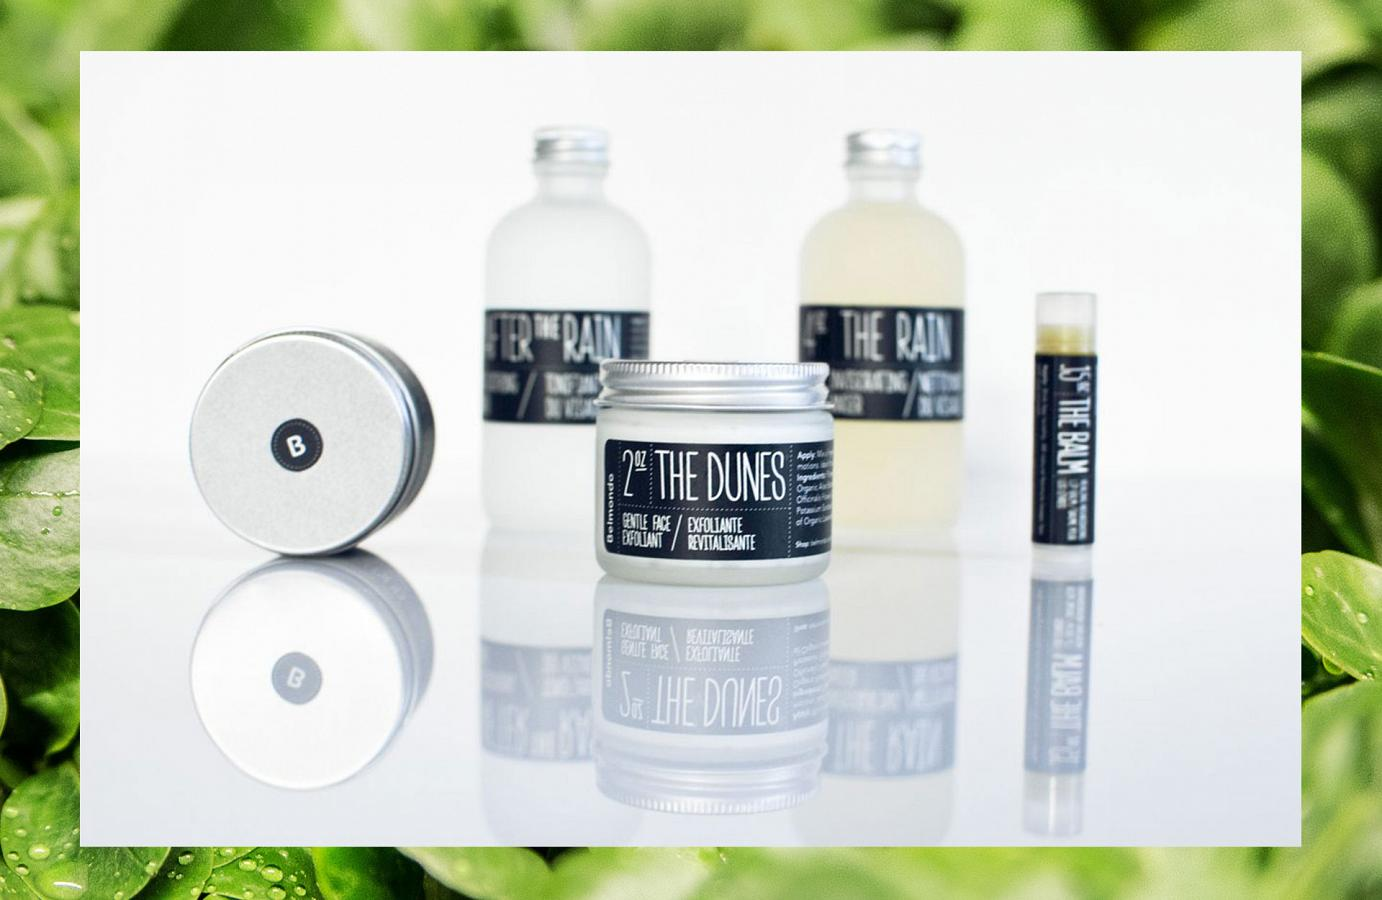 Powerhouse Retailer Anthropologie Picks Up Esthetics Grad Daniela Belmondo's Skincare Line